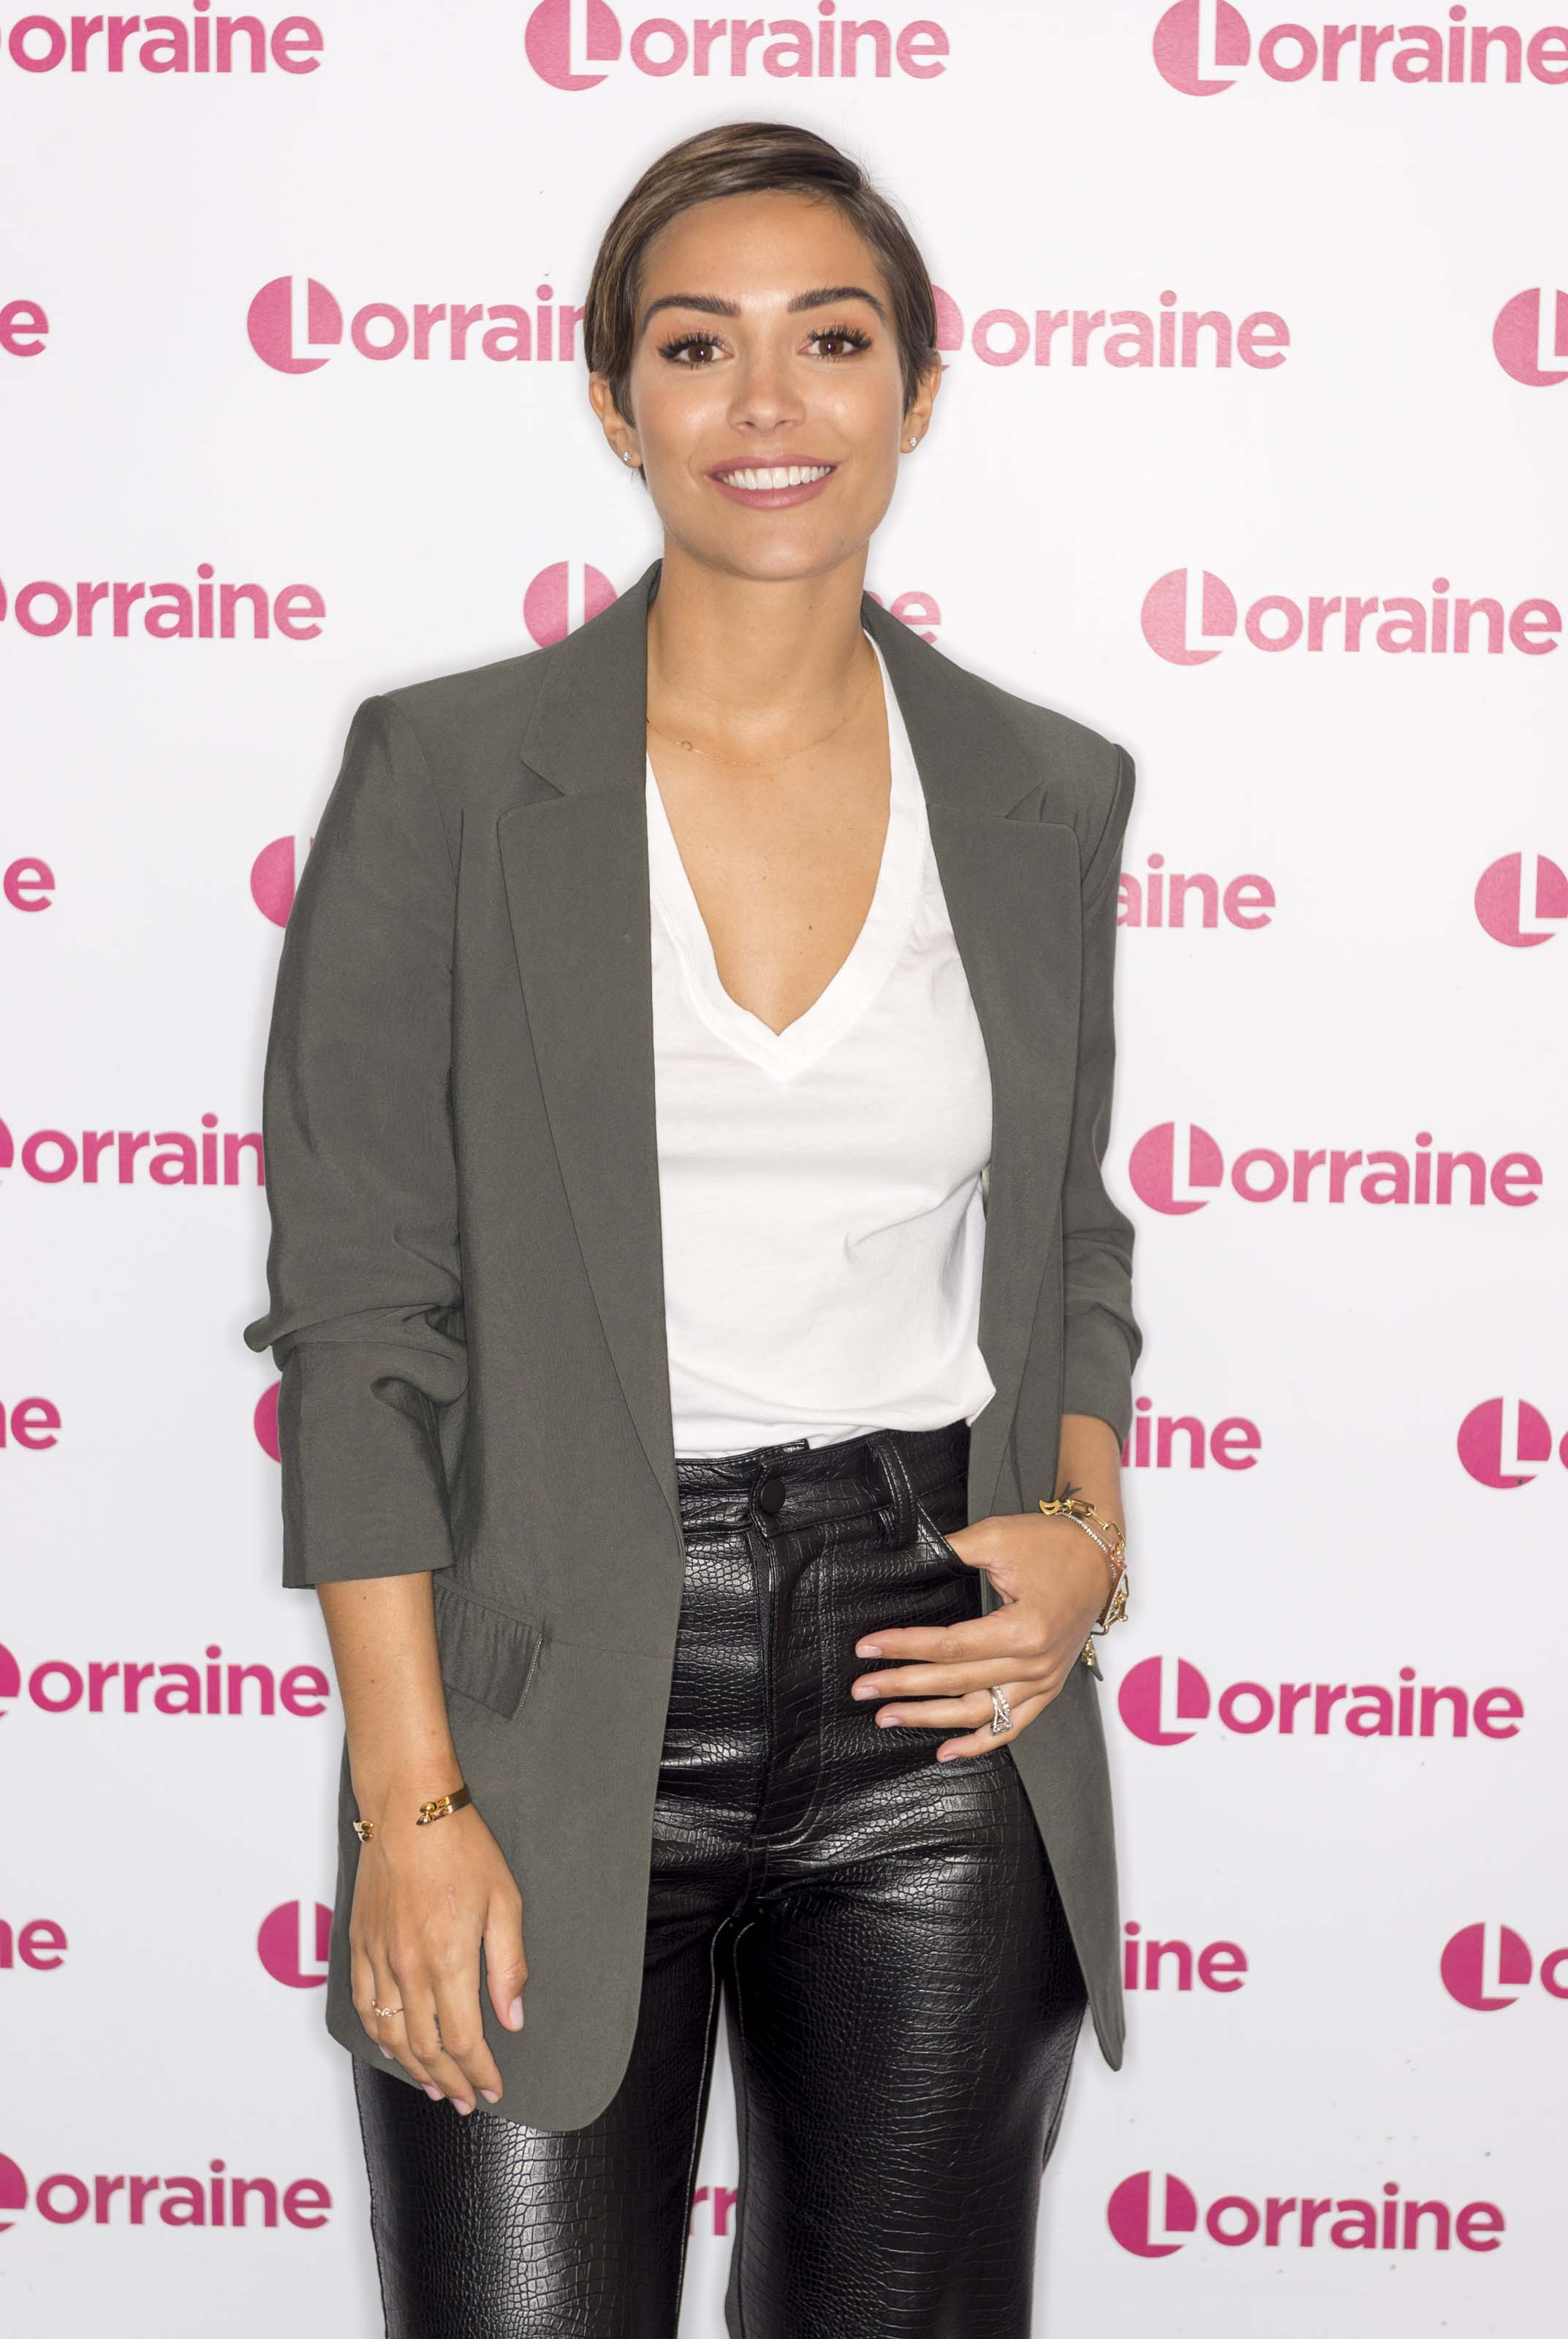 Frankie Bridge at Lorraine TV Show in London 5th March 2020